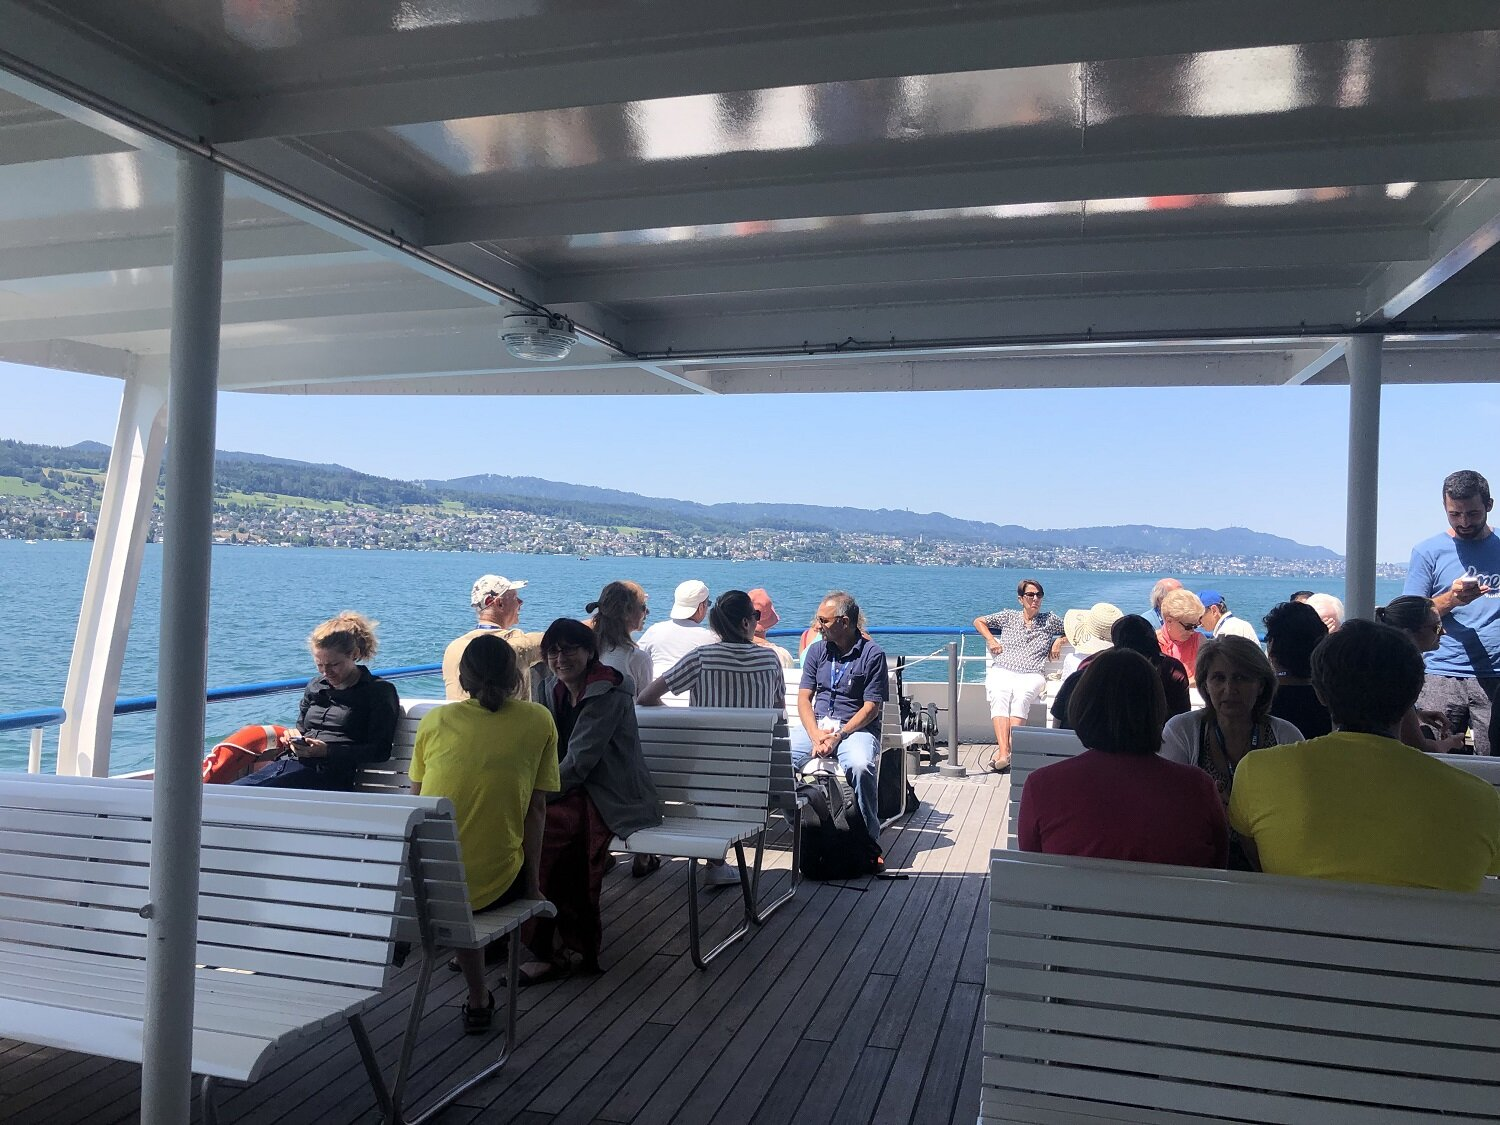 Participants and helpers enjoying a boat ride across Lake Zurich. Photo: G. Crain